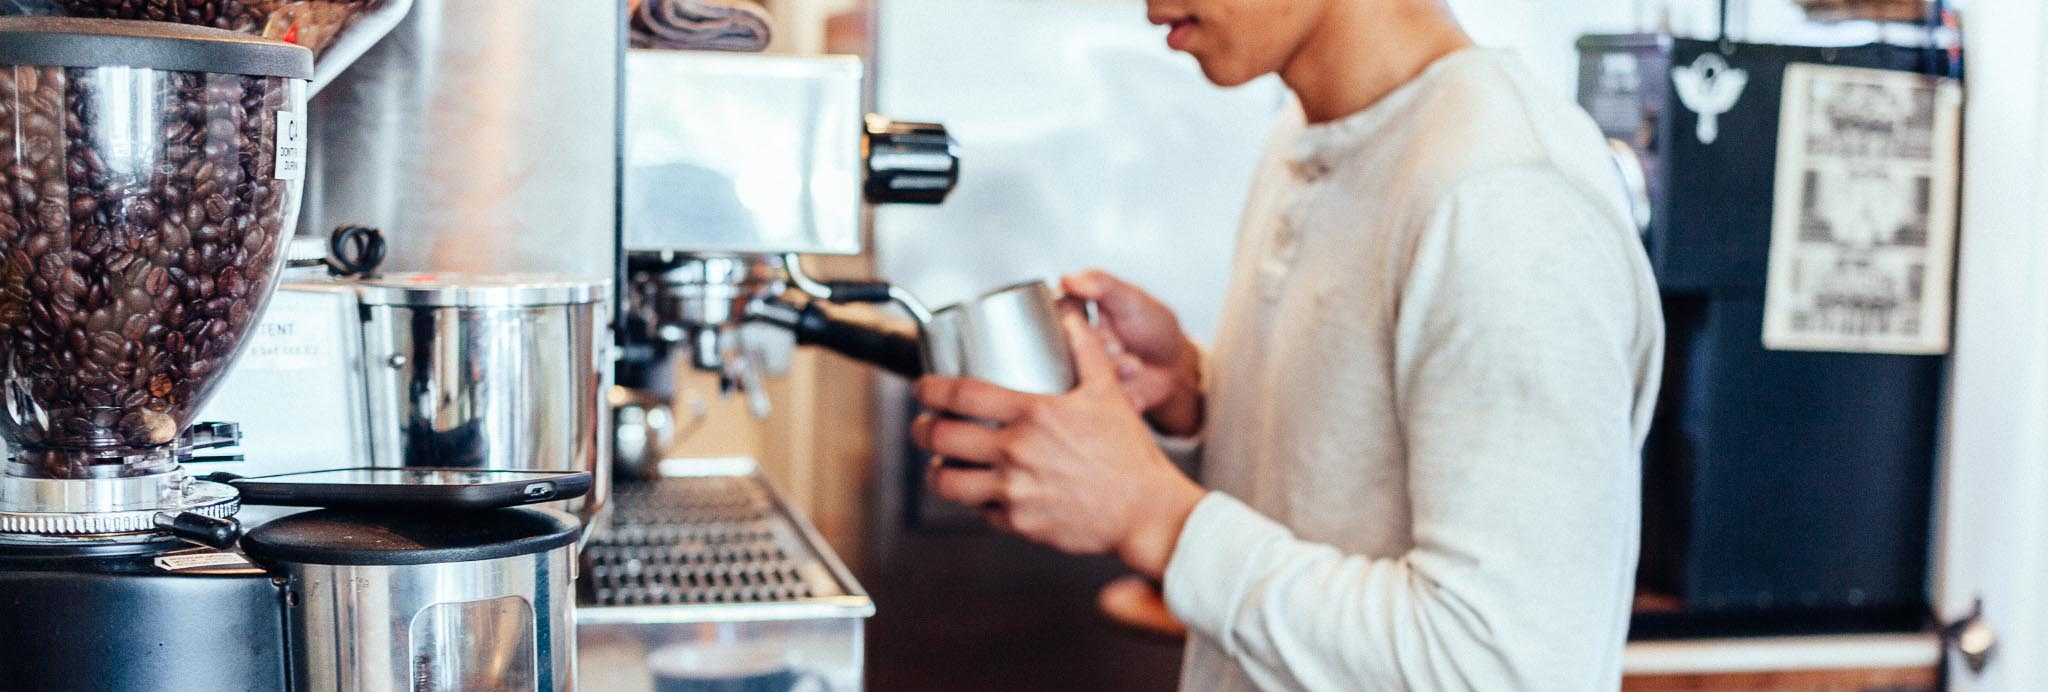 LOOKING FOR SOMETHING A LITTLE MORE PROFESSIONAL? - Book a barista to work in your coffee shop, On-Demand.